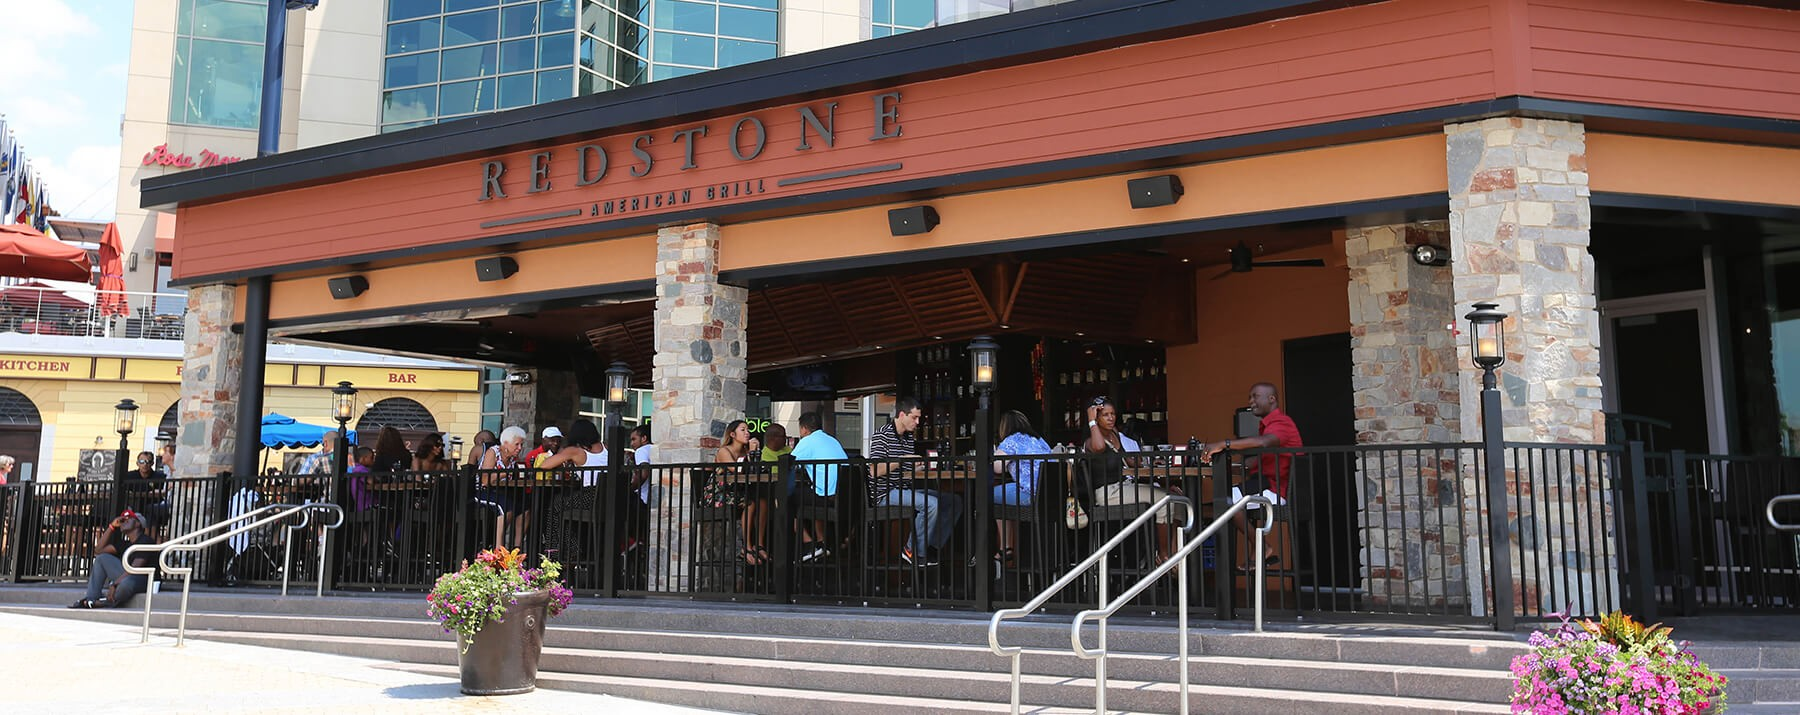 National Harbor | Redstone Grill